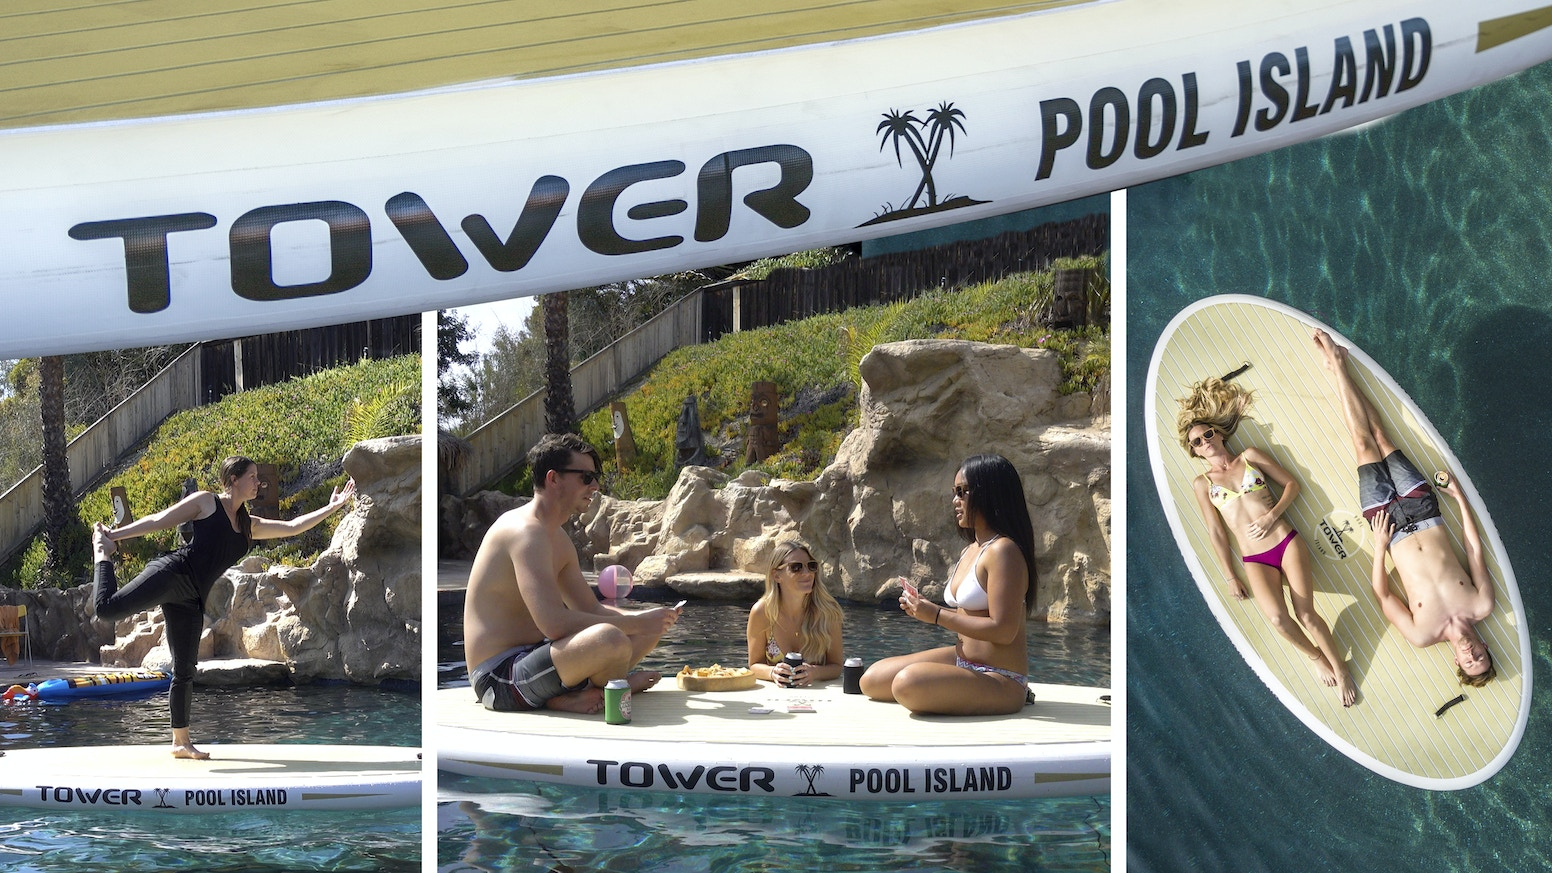 Tower Pool Island